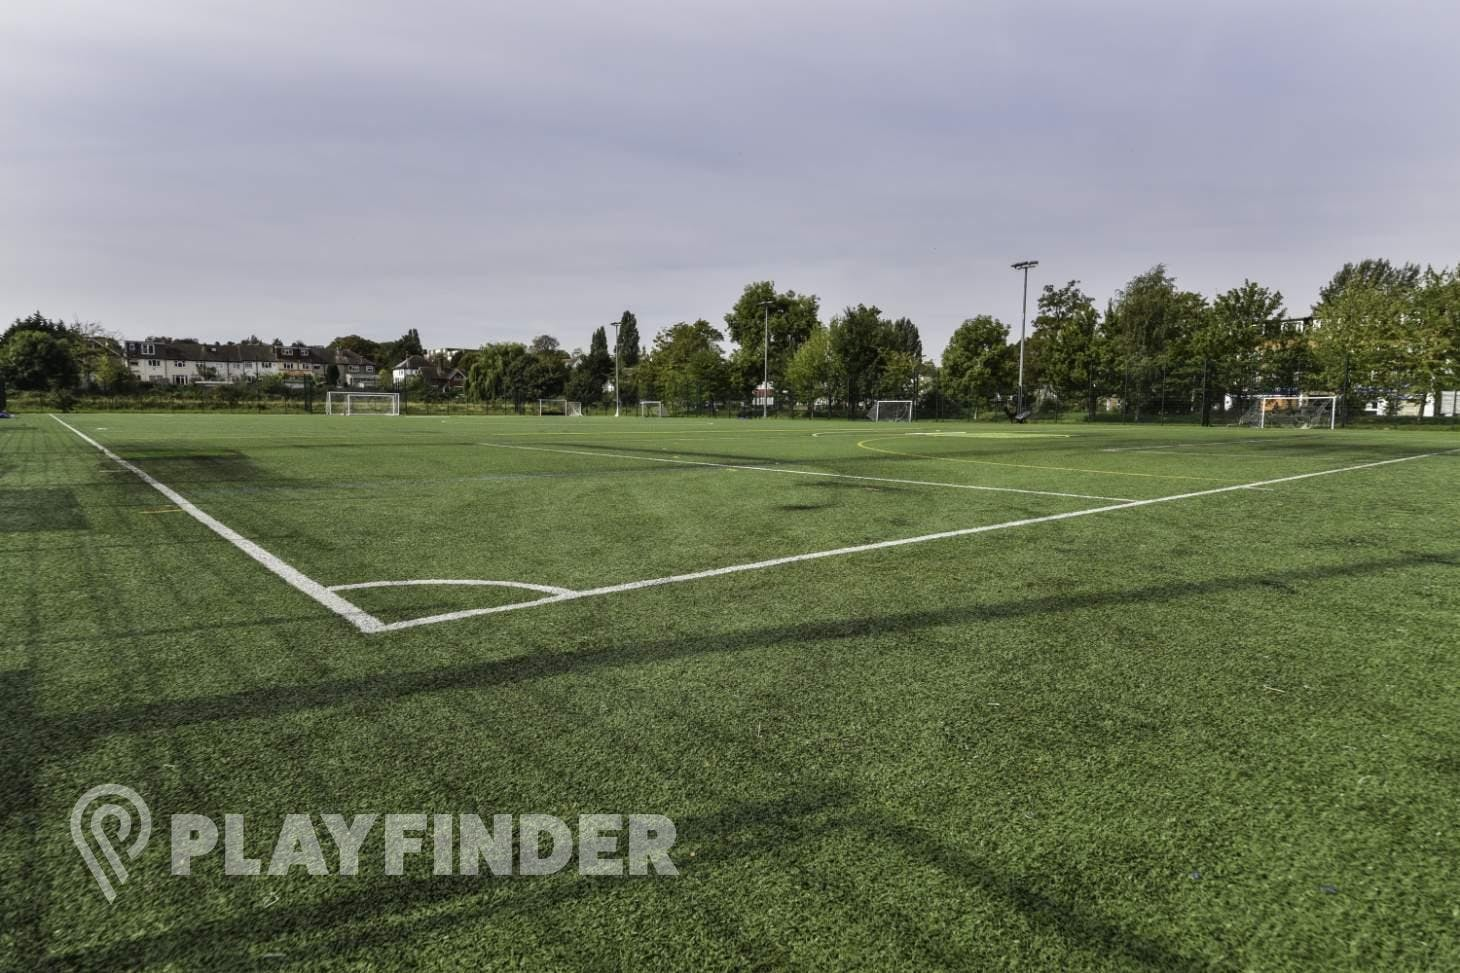 Tooting and Mitcham Community Sports Club Union | 3G Astroturf rugby pitch